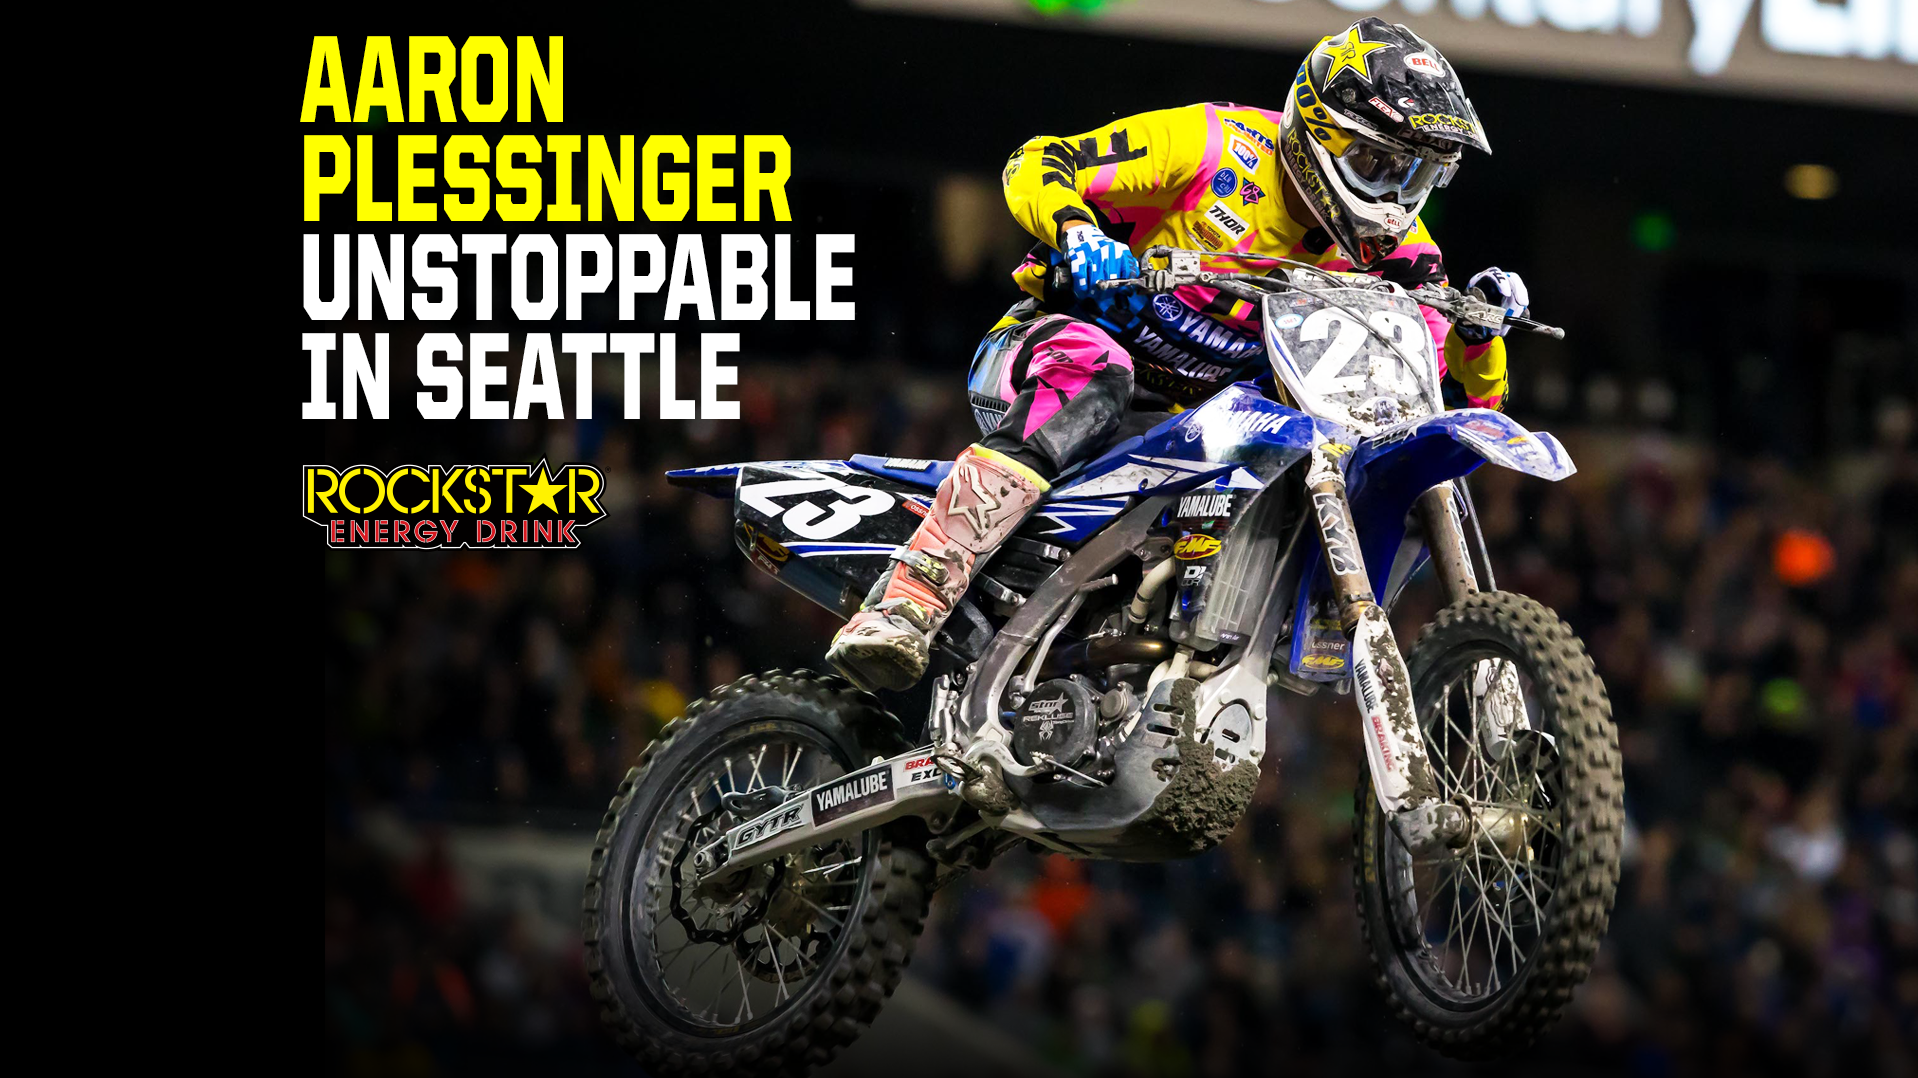 Aaron Plessinger Unstoppable in Seattle